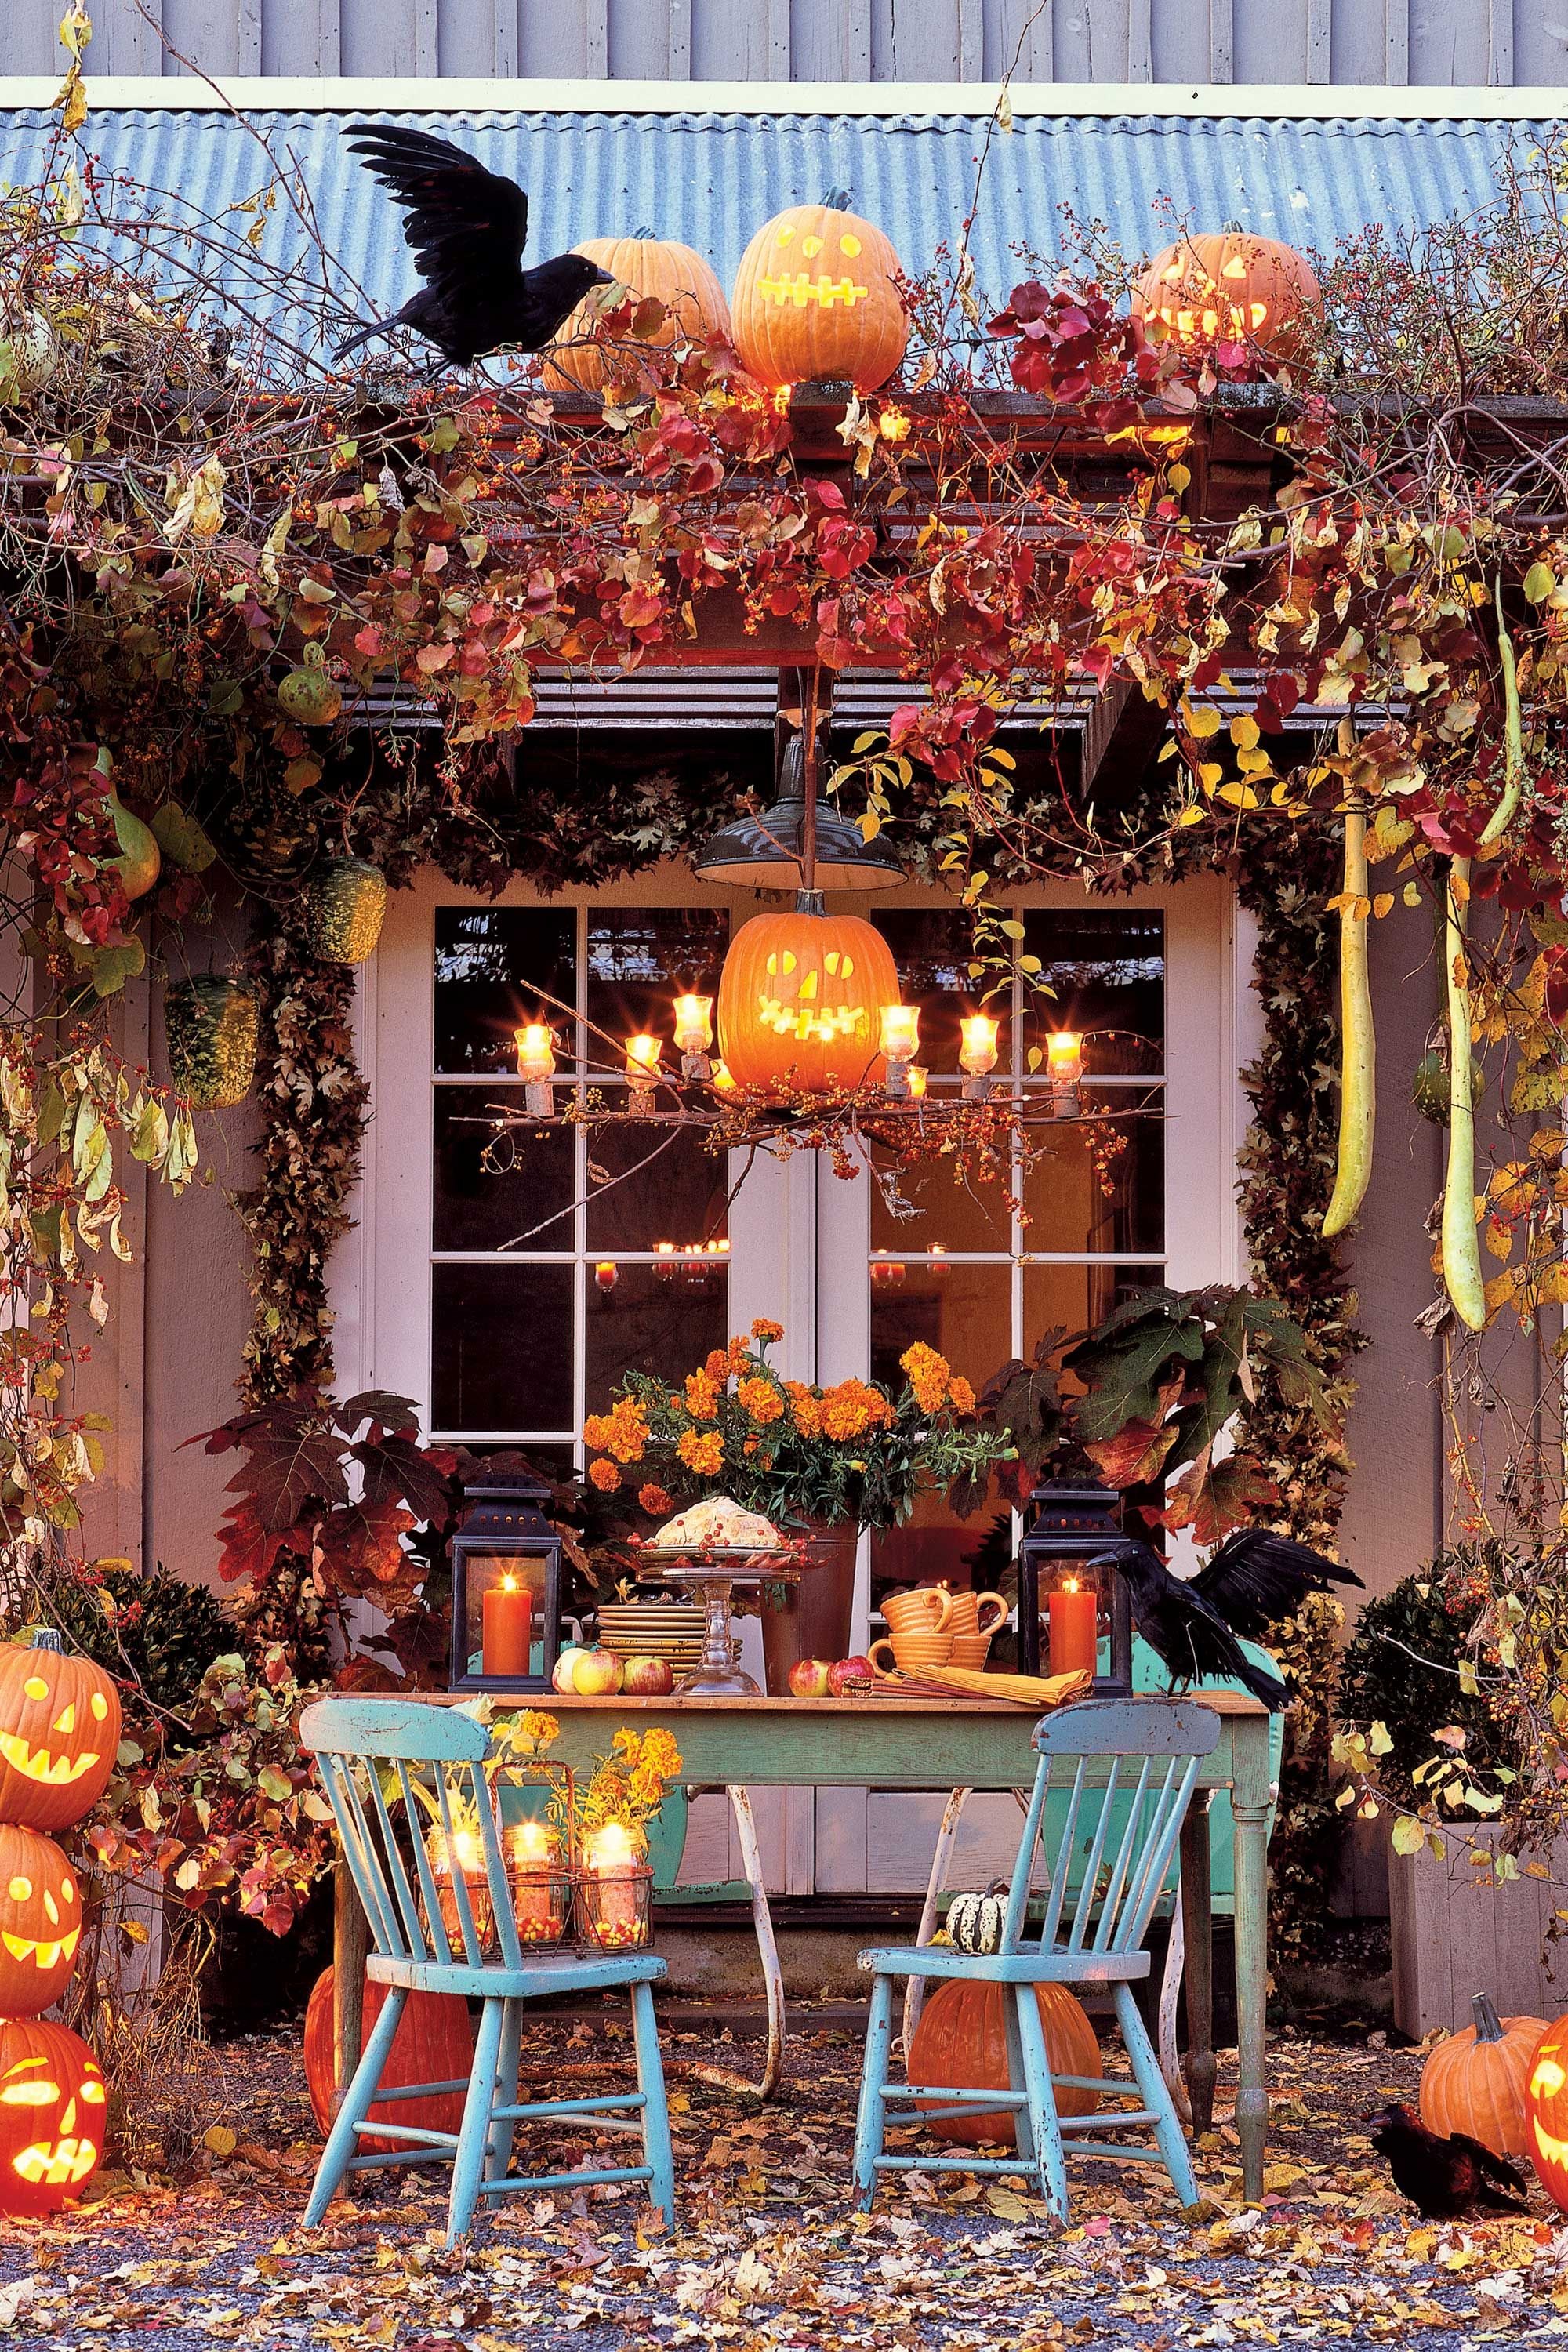 56 fun and festive halloween party decoration ideas - Outdoor Halloween Party